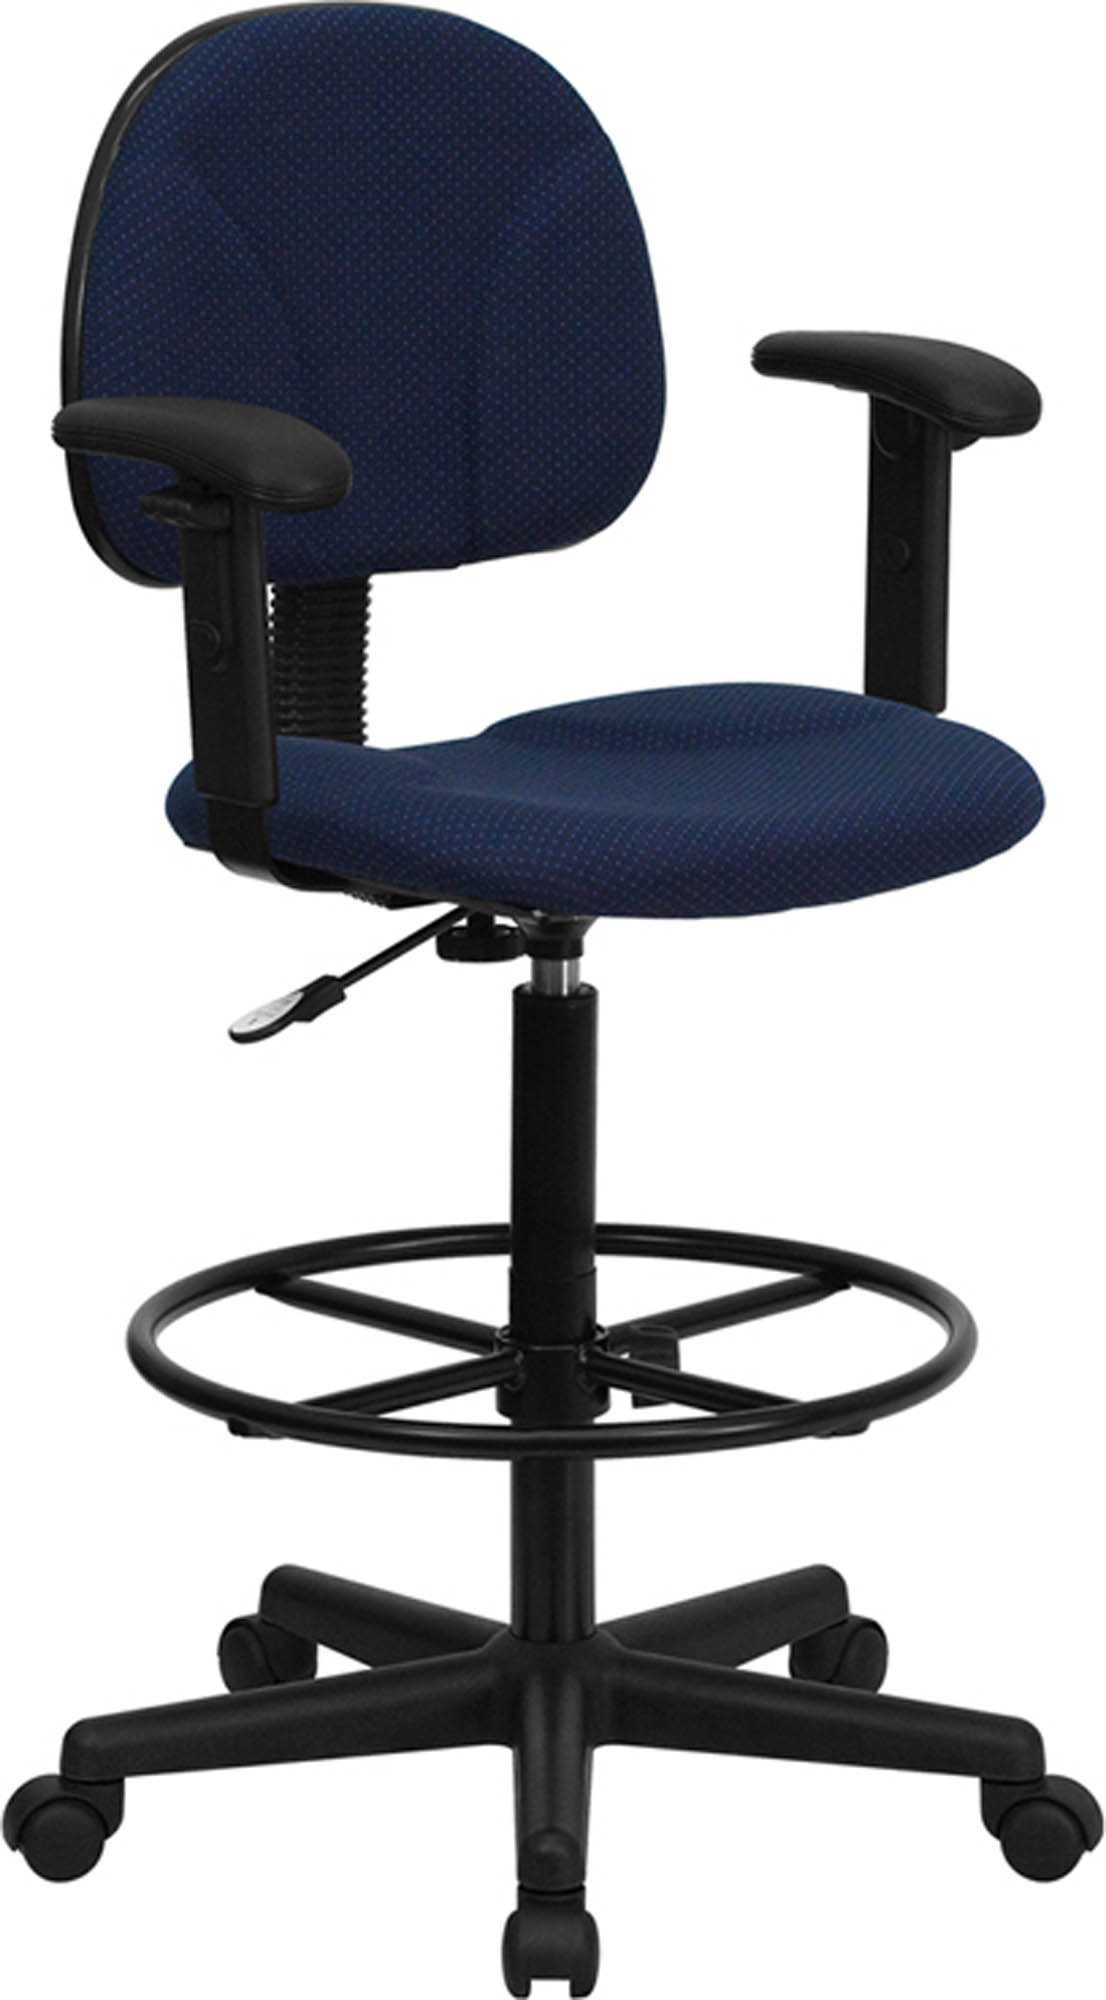 Offex BT-659-NVY-ARMS-GG Navy Blue Patterned Fabric Drafting Stool with Arms (Adjustable Range 26'-30.5'H or 22.5'-27'H)